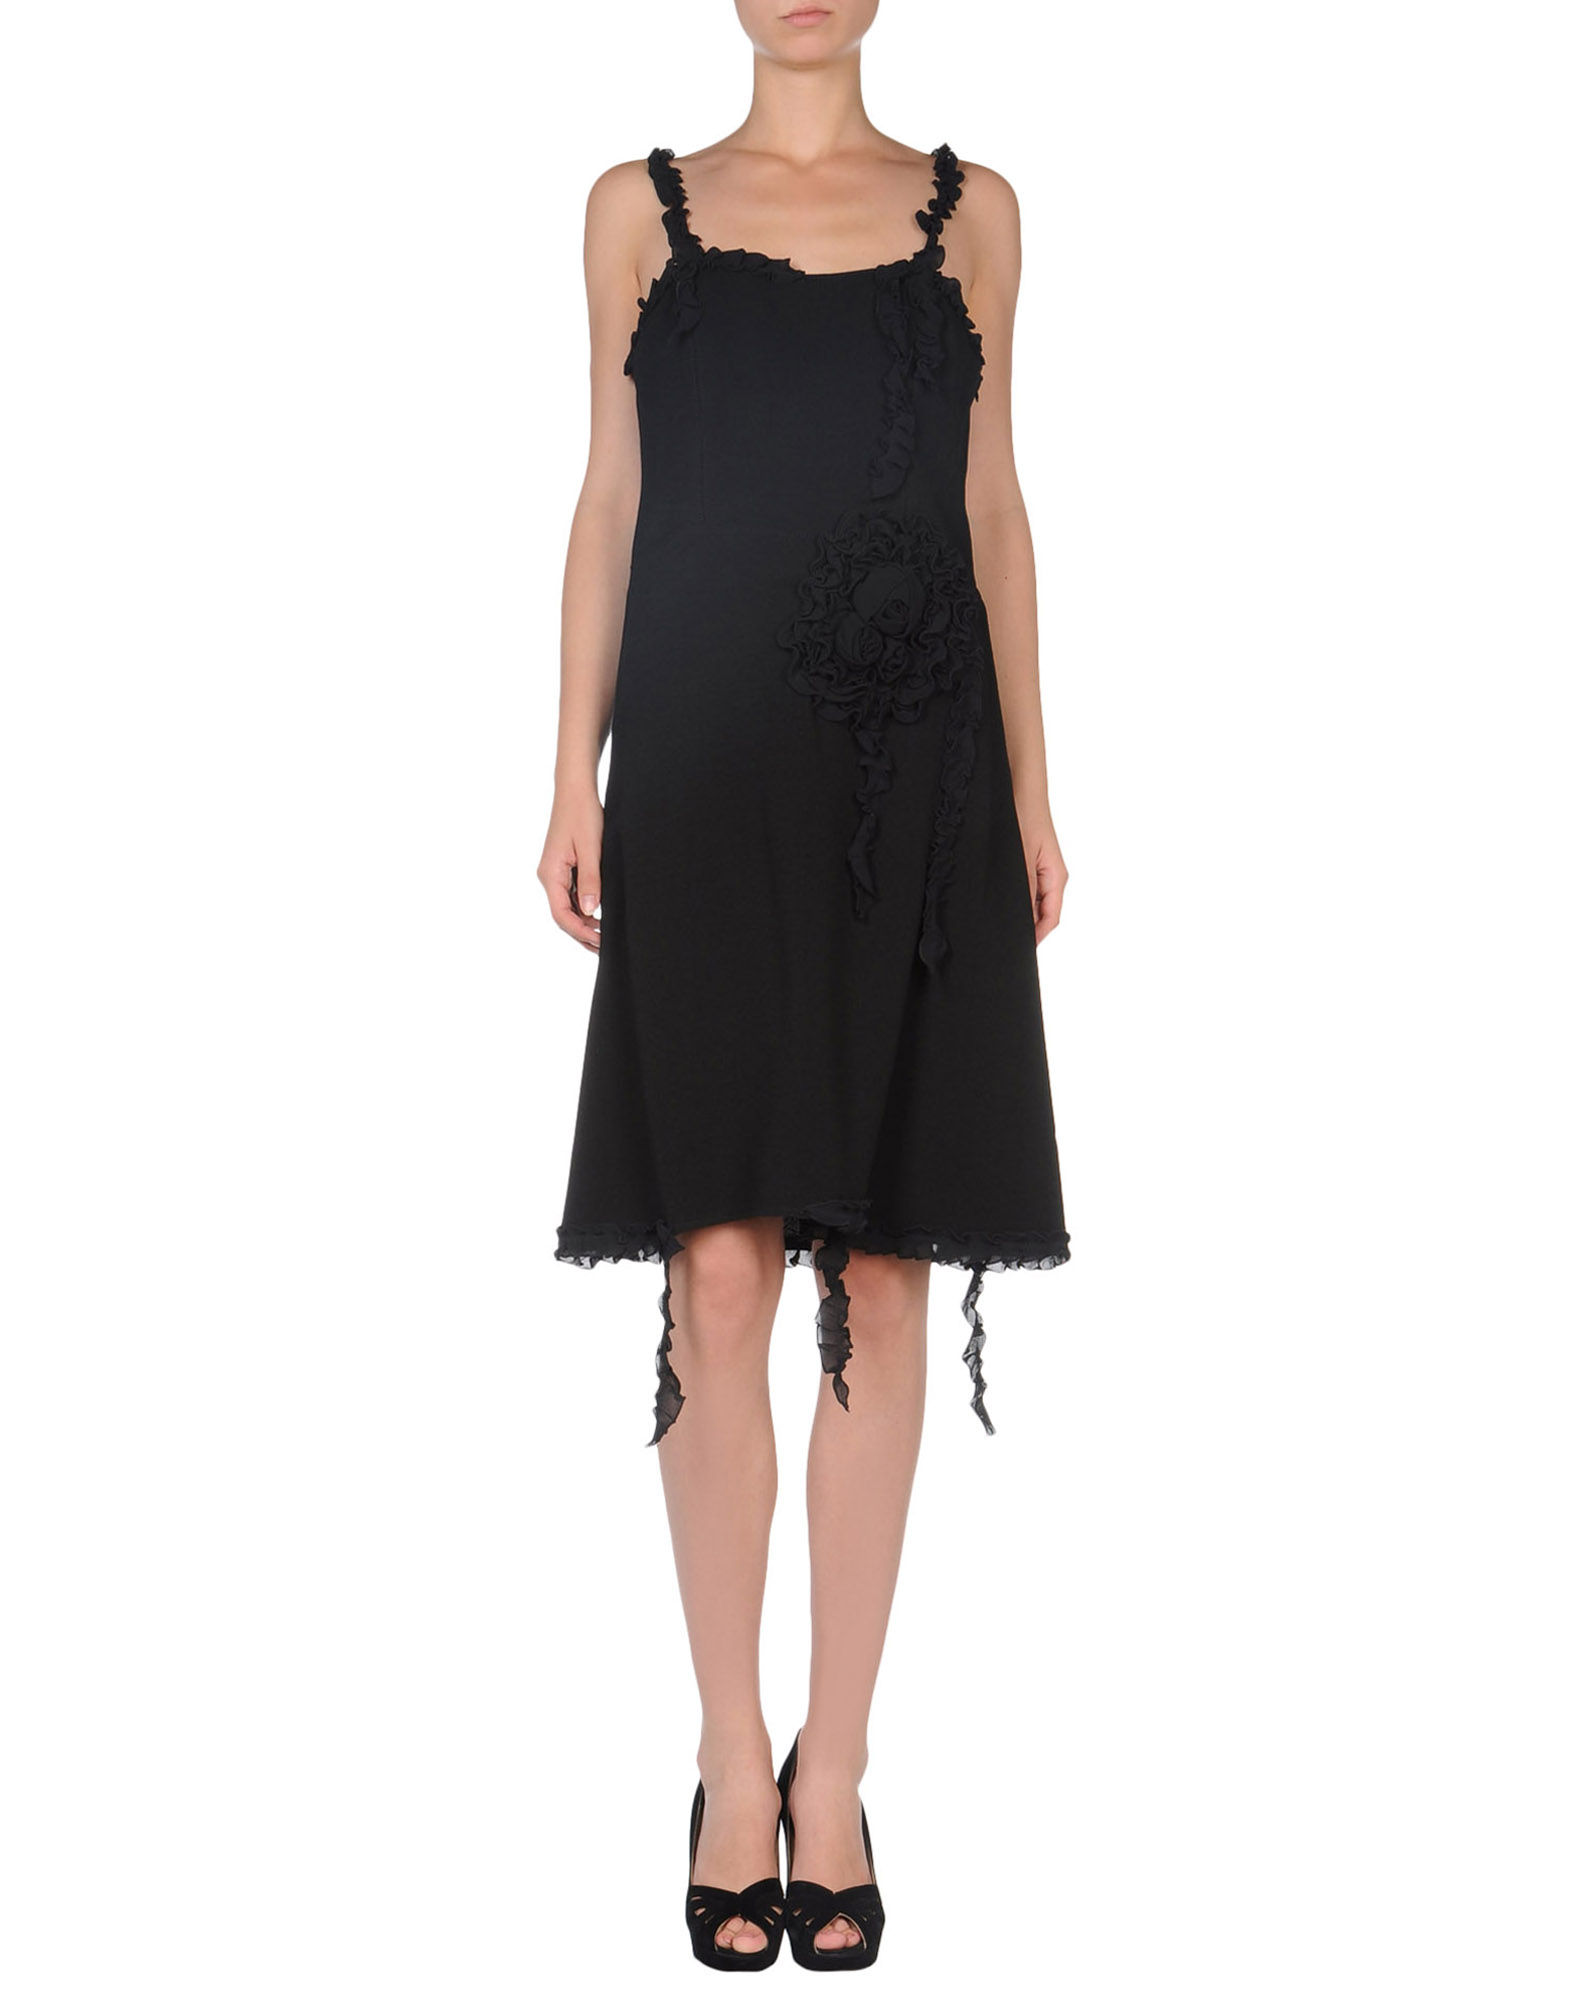 Boutique moschino Sleeveless Basic Neckline Black Short ...